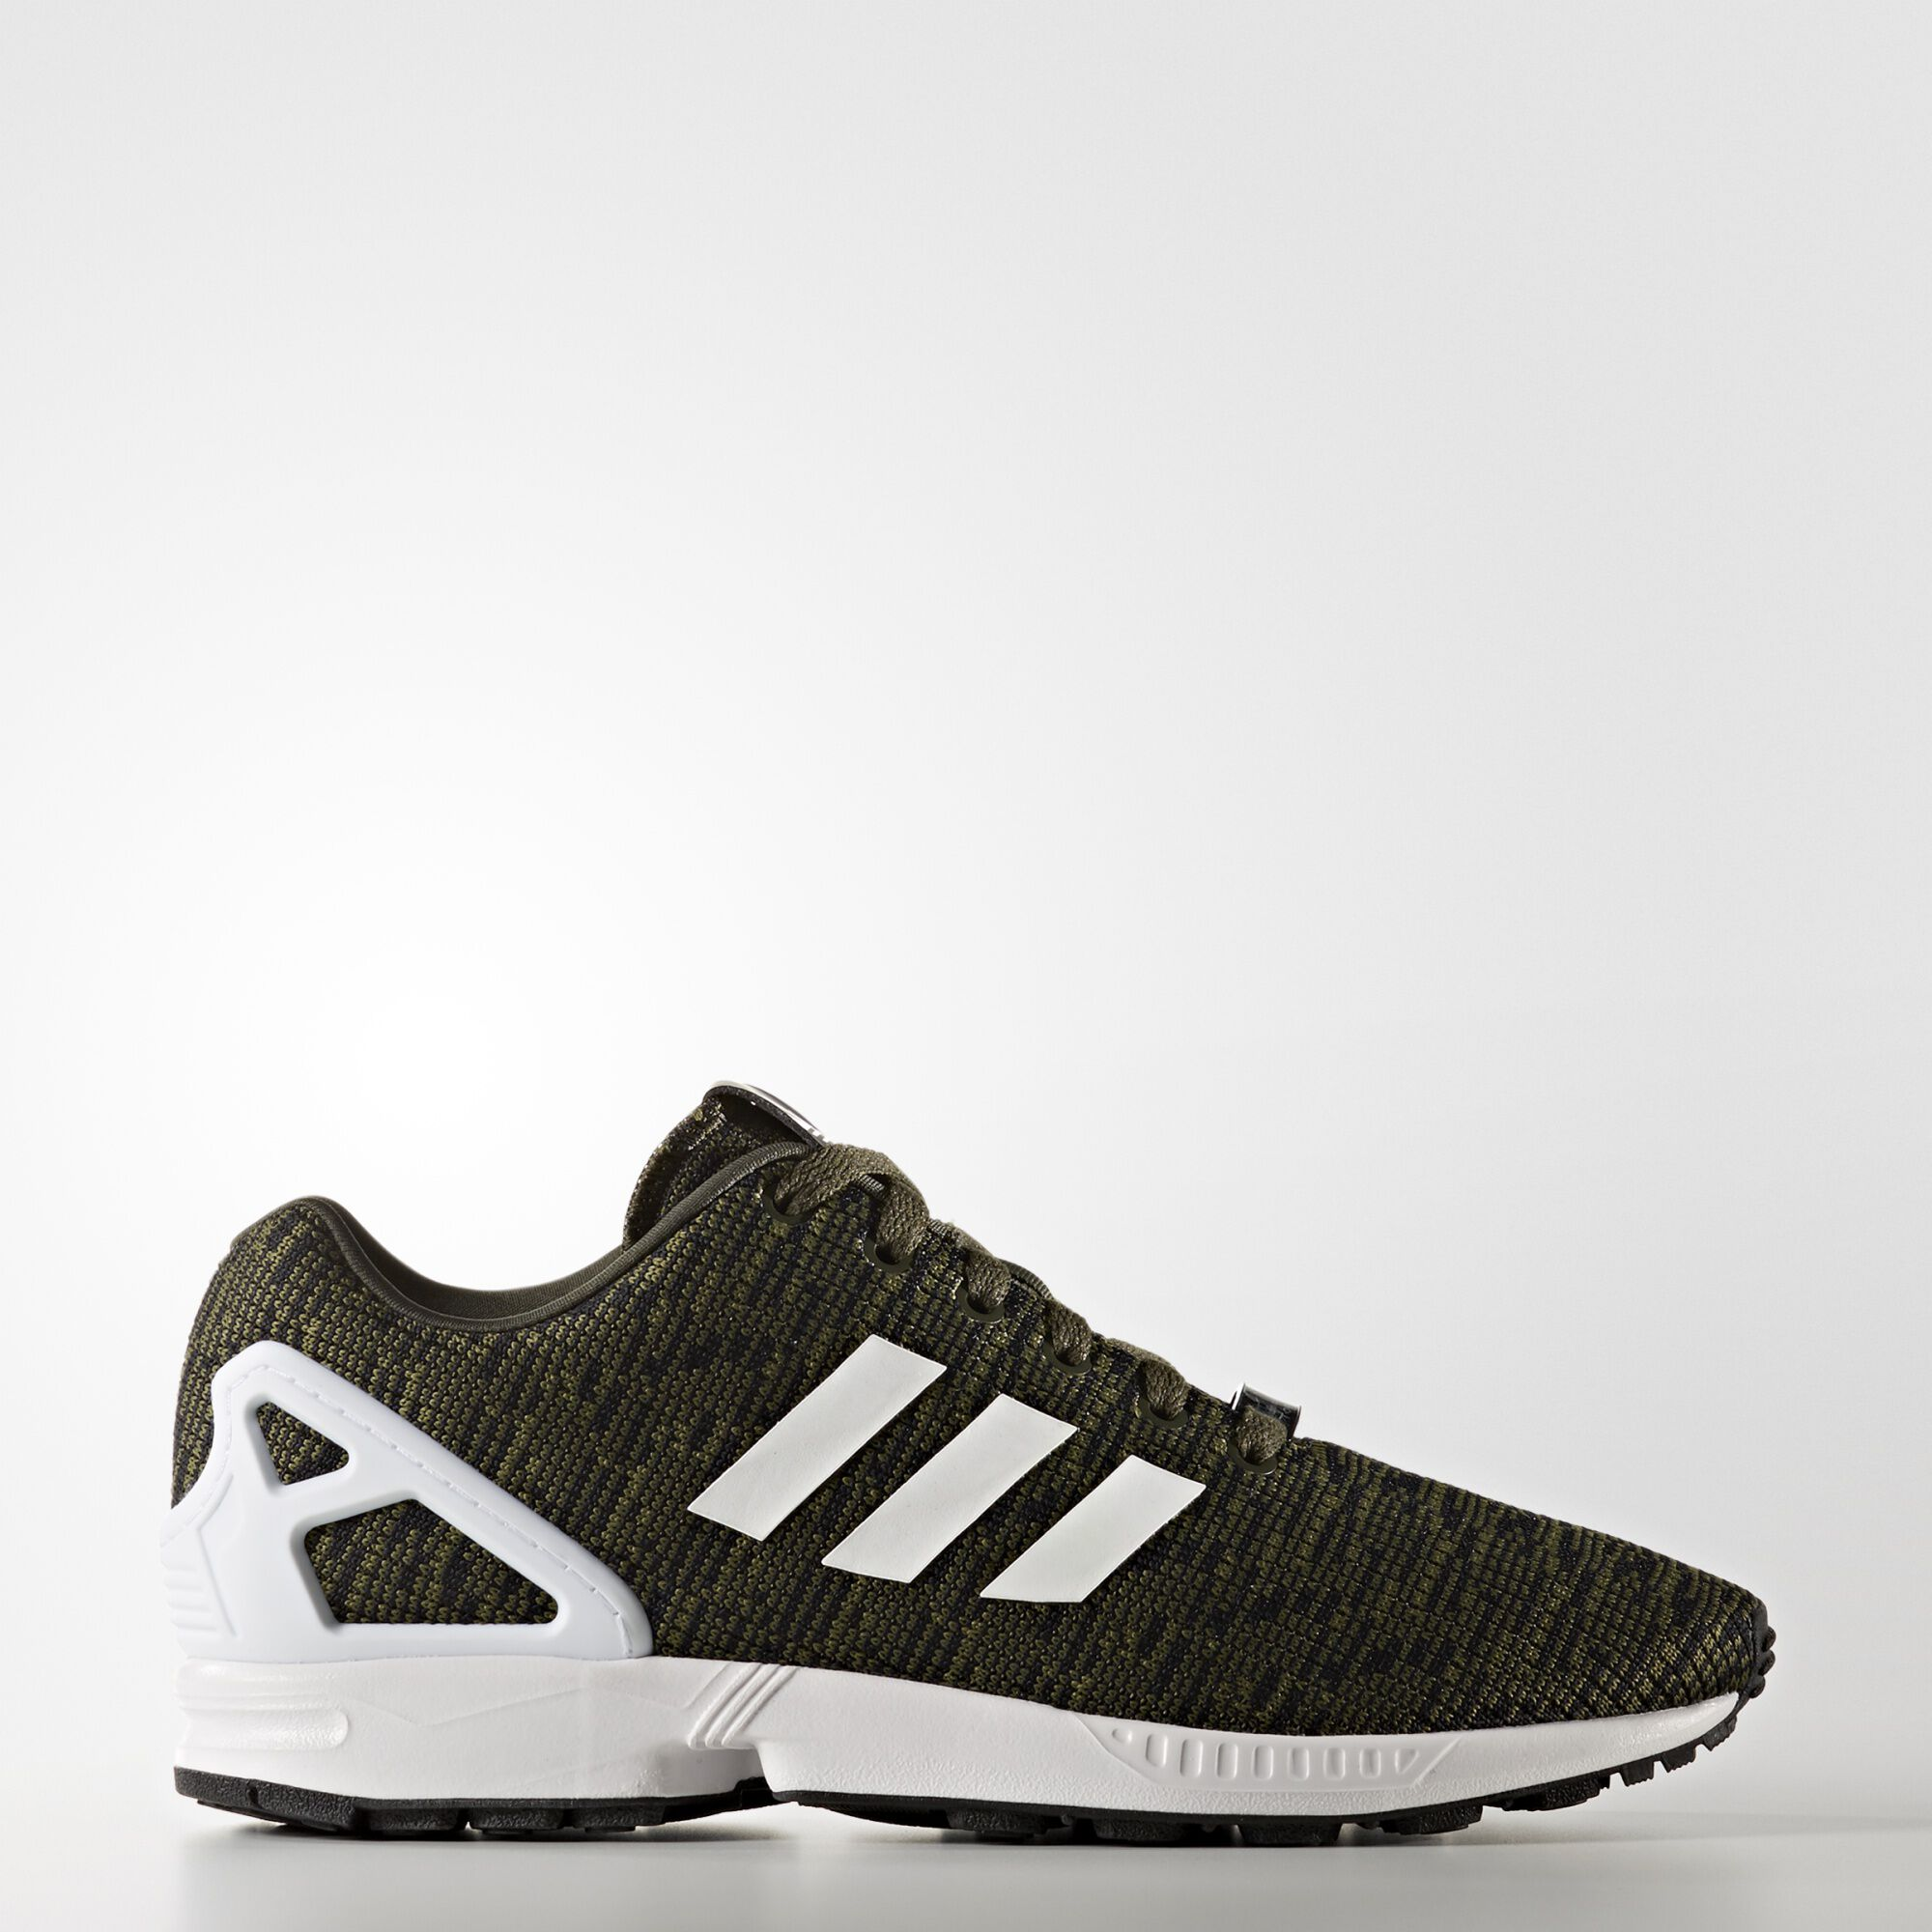 Adidas Shoes Zx Flux 2017